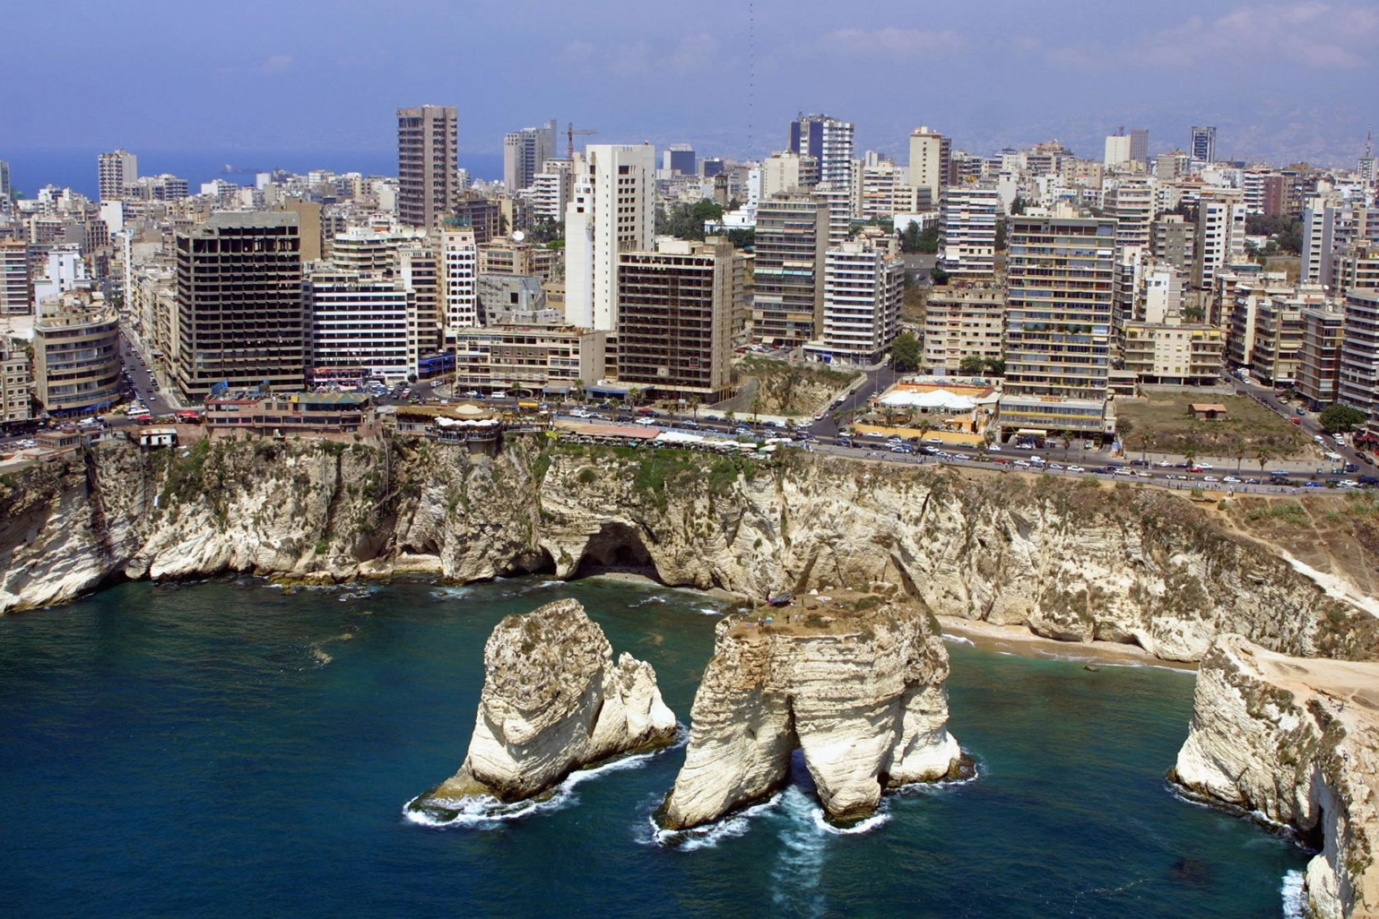 Beirut - world oldest city